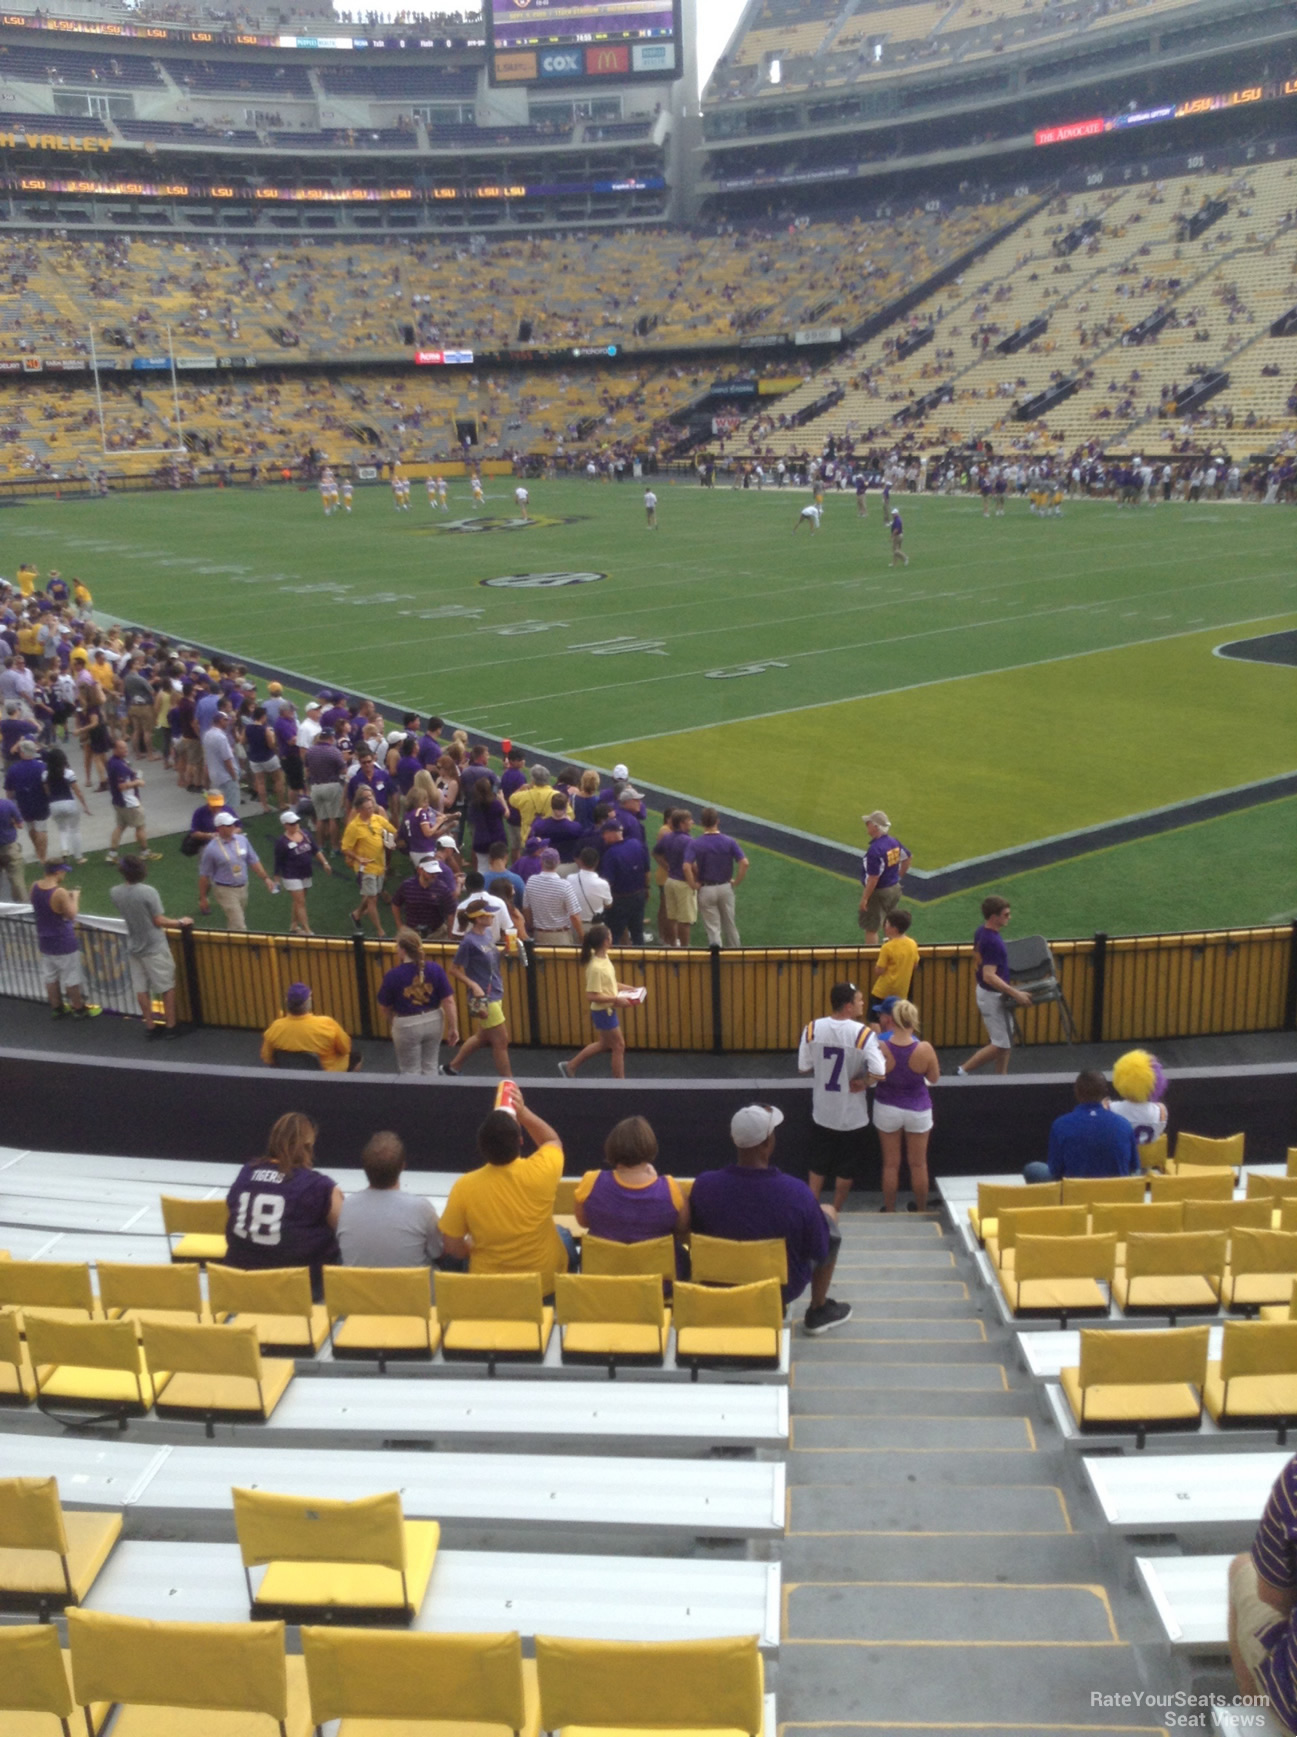 Section 213, Row 1